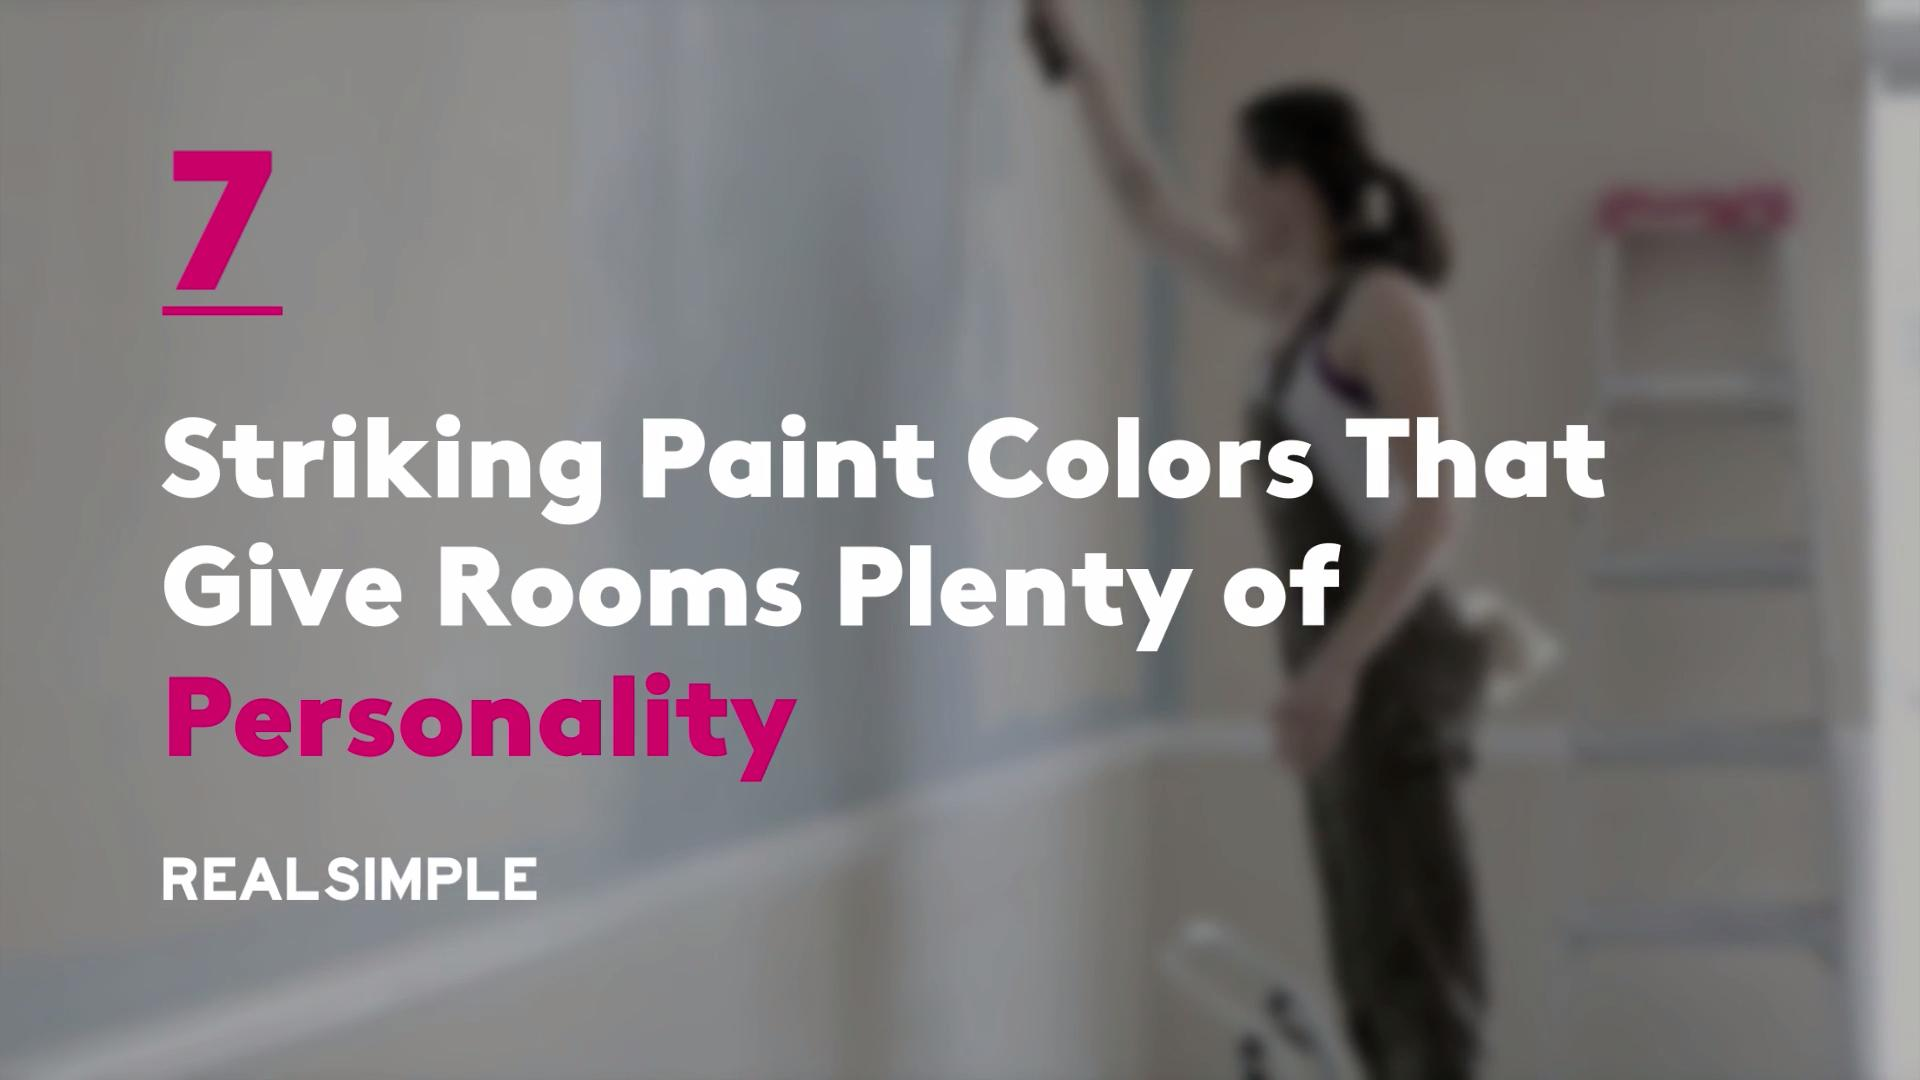 7 Striking Paint Colors That Give Rooms Plenty of Personality